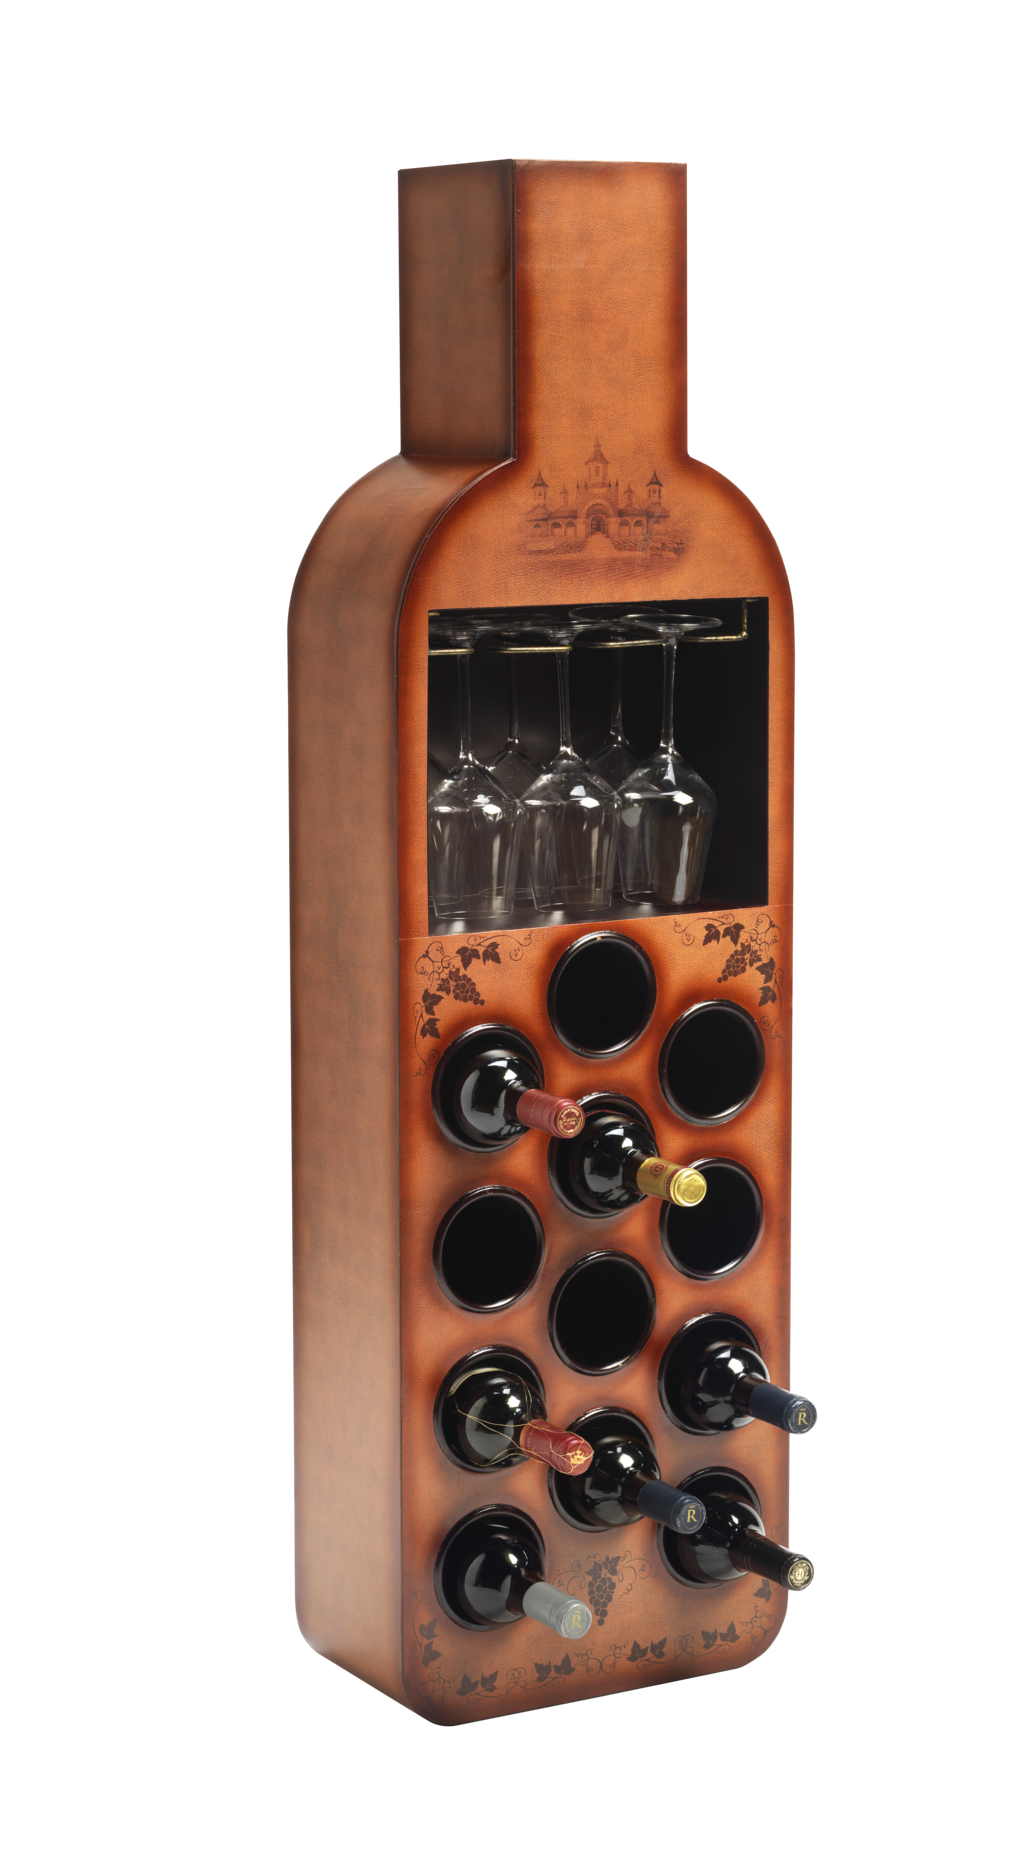 12 Bottle Floor Standing Vintage Wine Rack With Bar Products